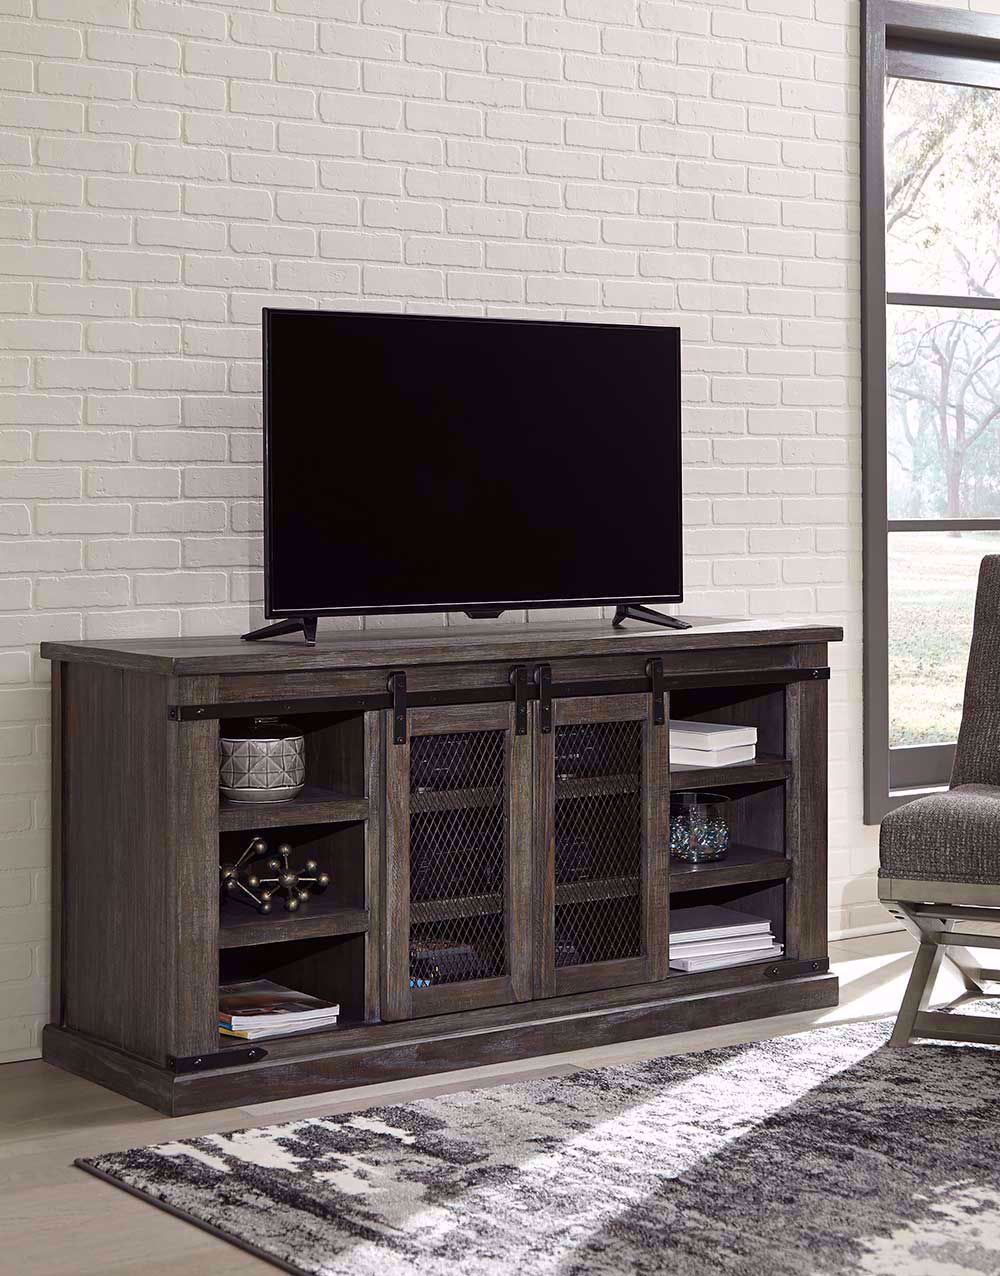 Picture of Danell Ridge Large TV Stand